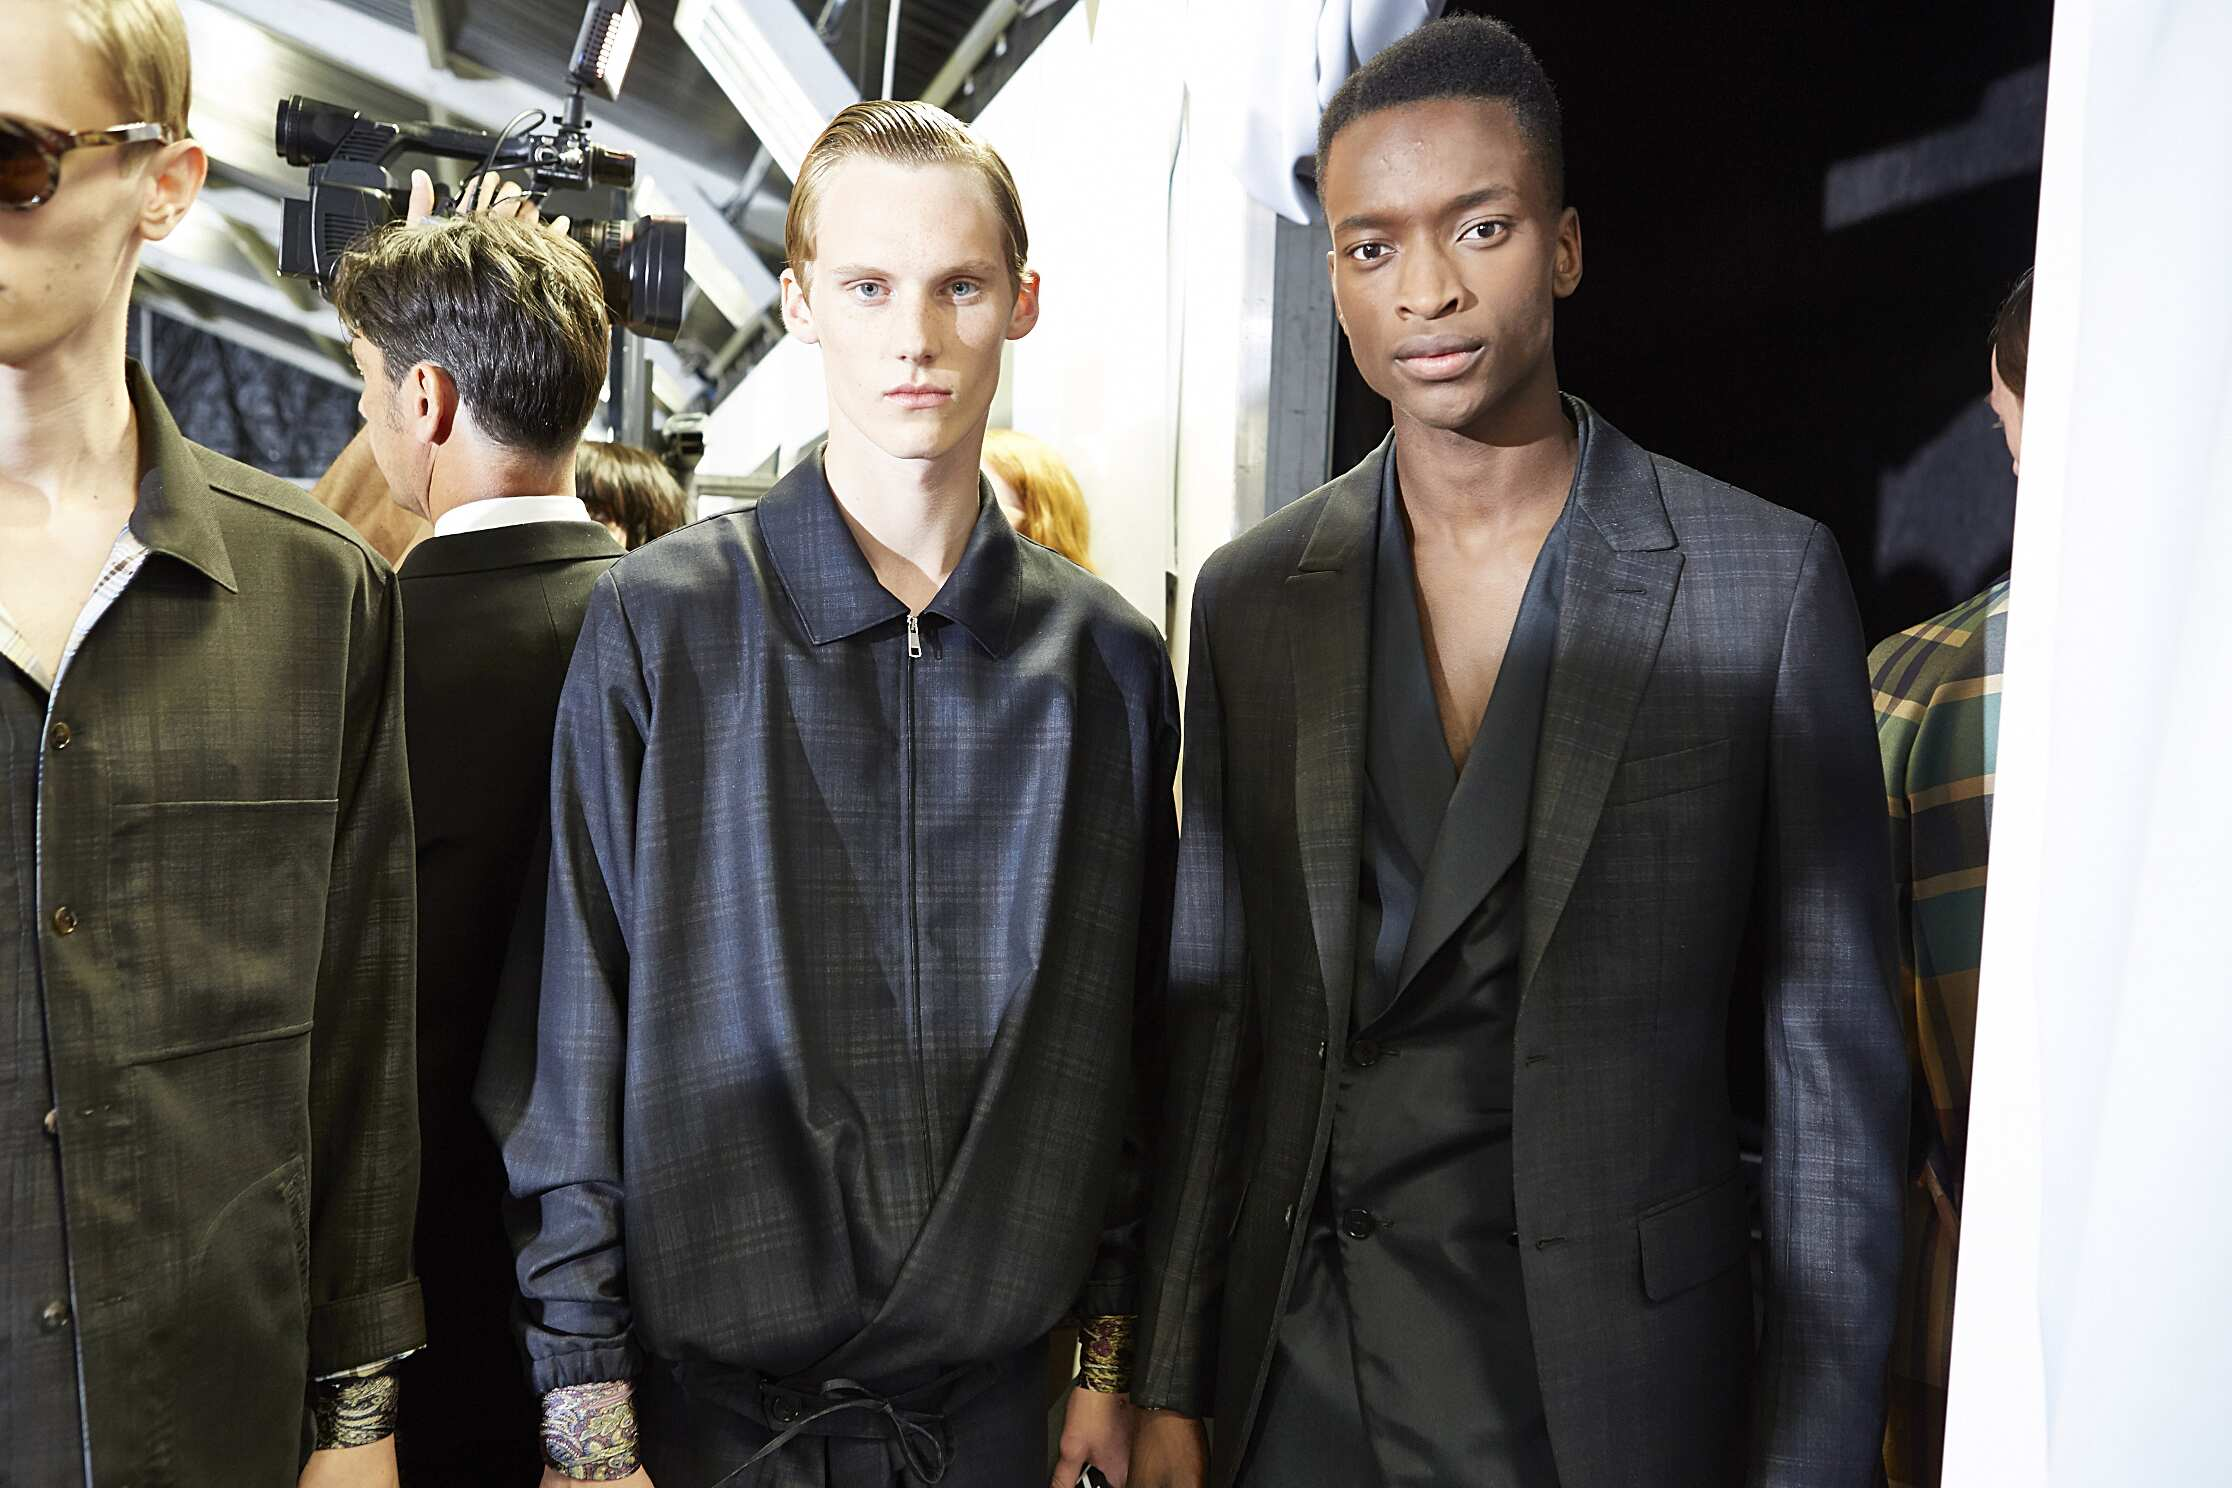 Backstage Ermenegildo Zegna Couture Fashion Show Milan